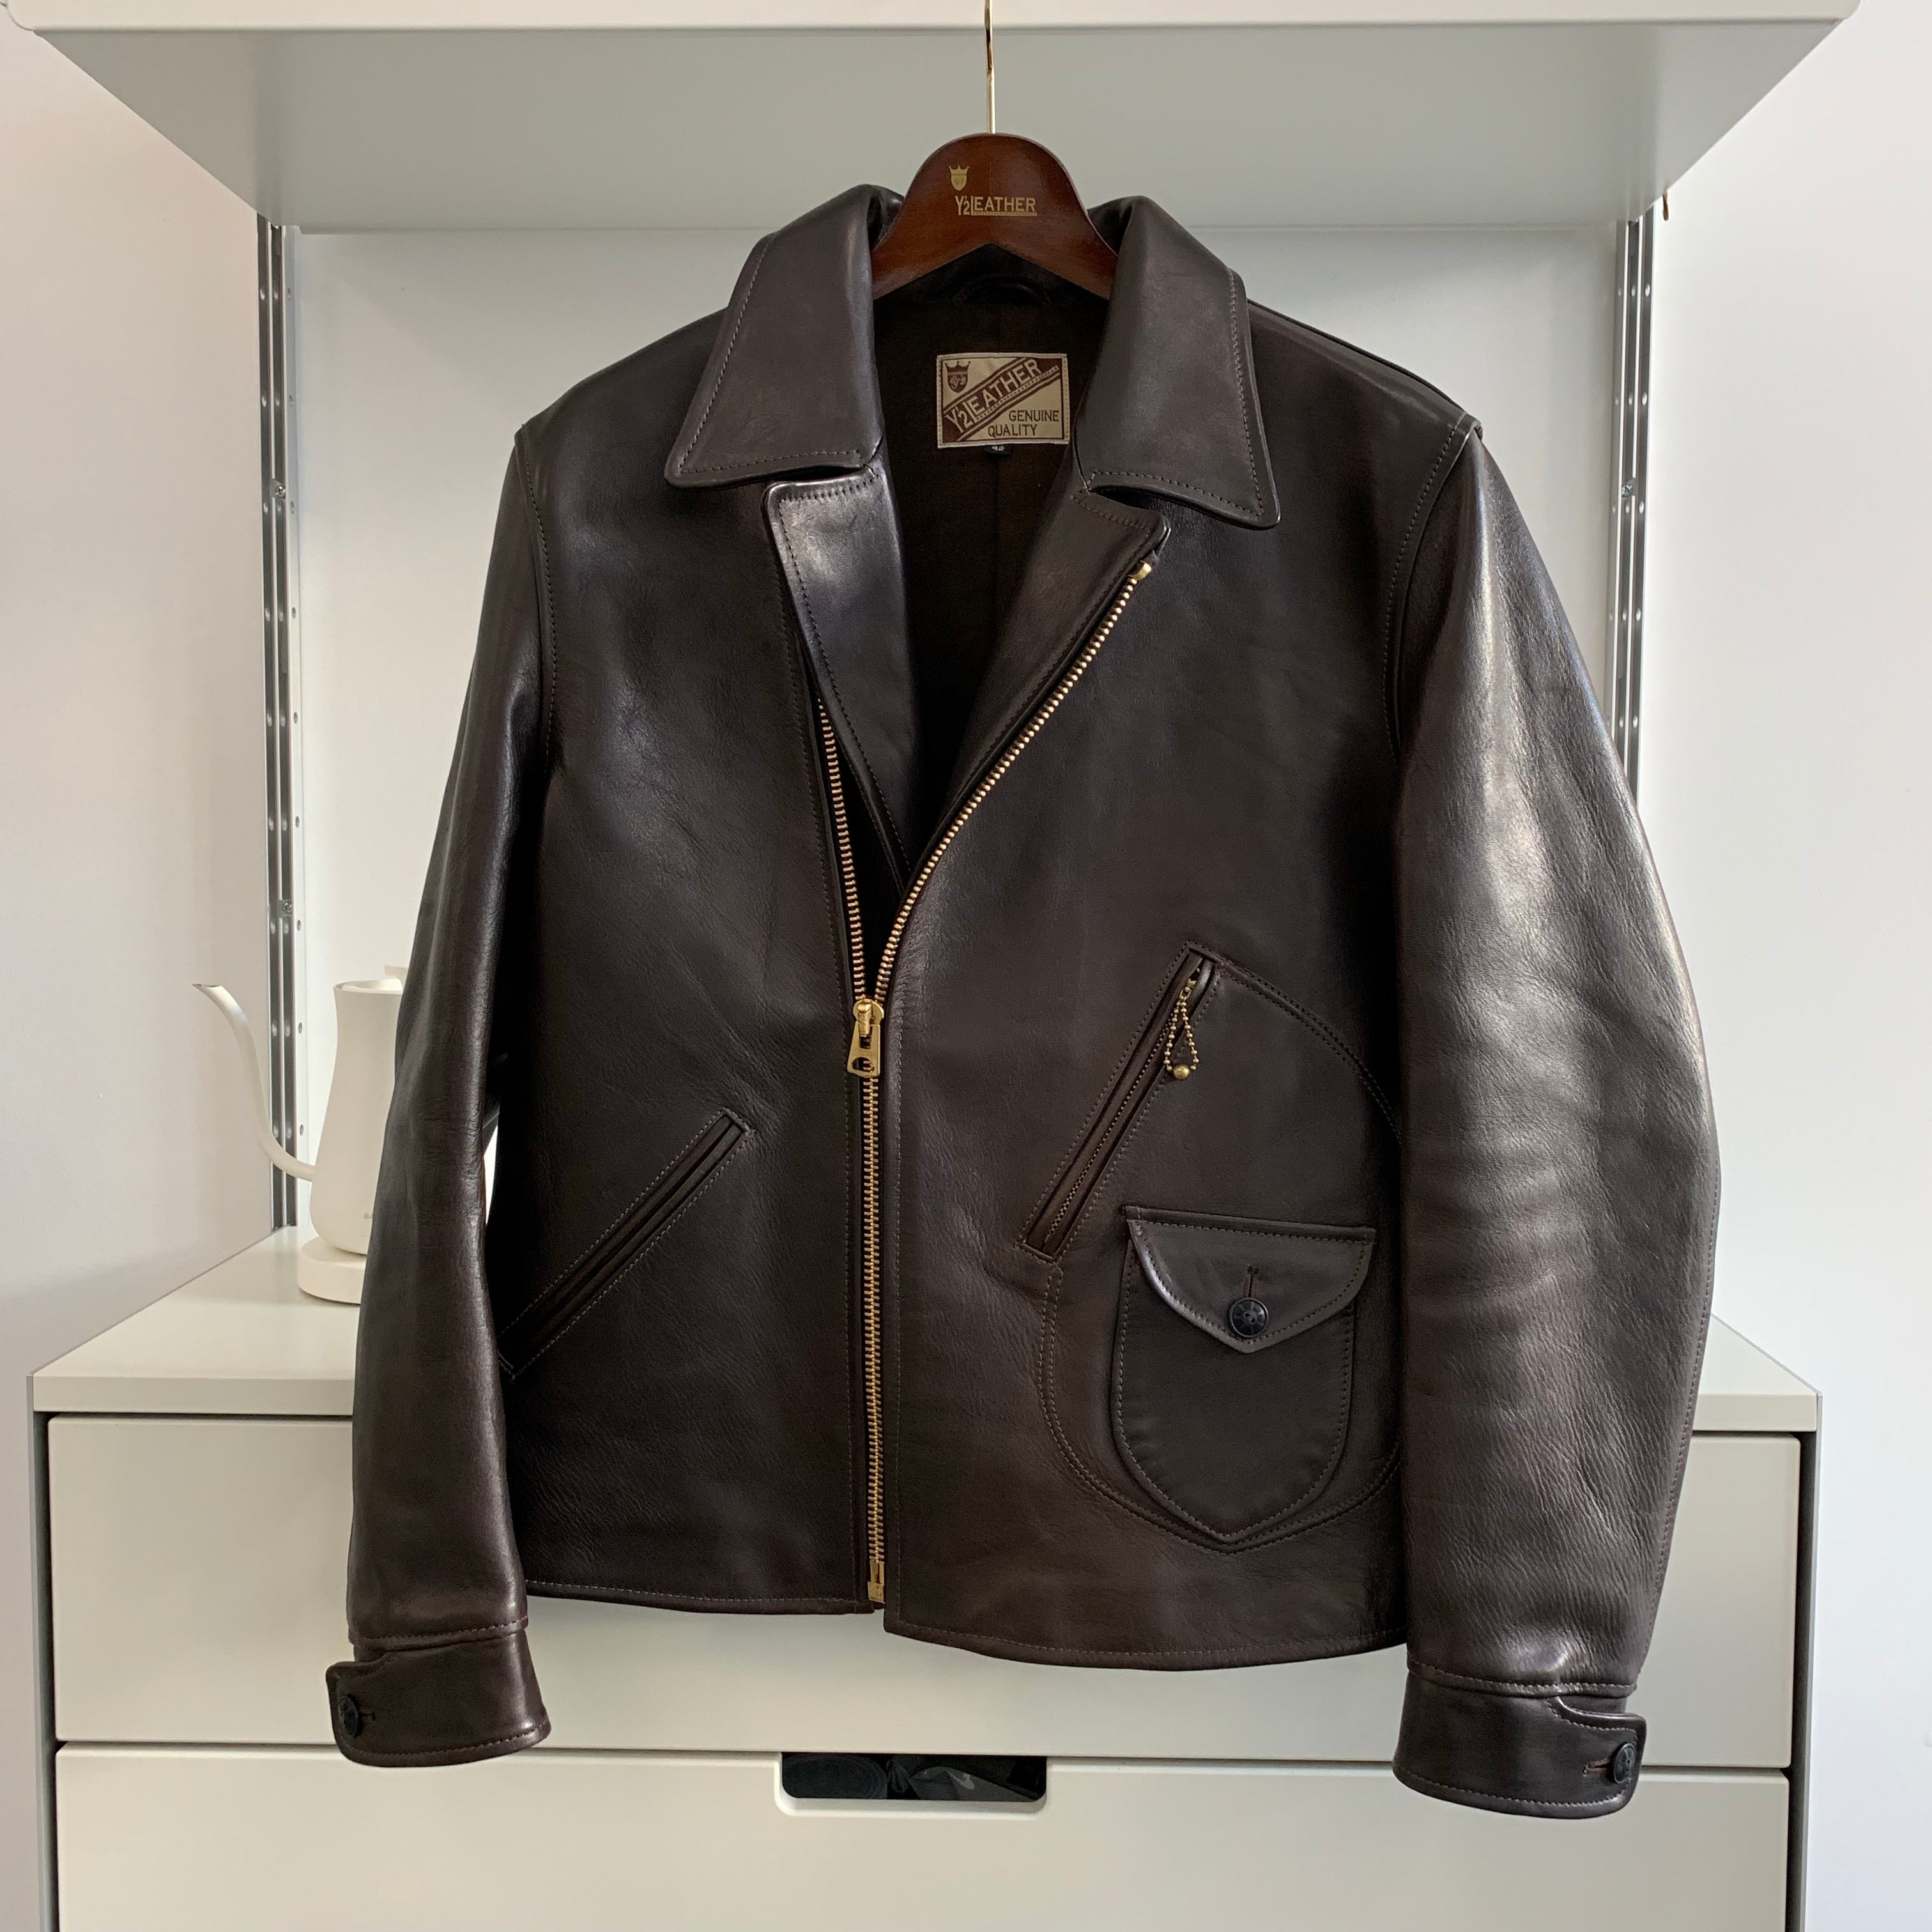 Vegetable Tanned Hand-Dyed Horsehide Double Riders Jacket in Black (HR-56)